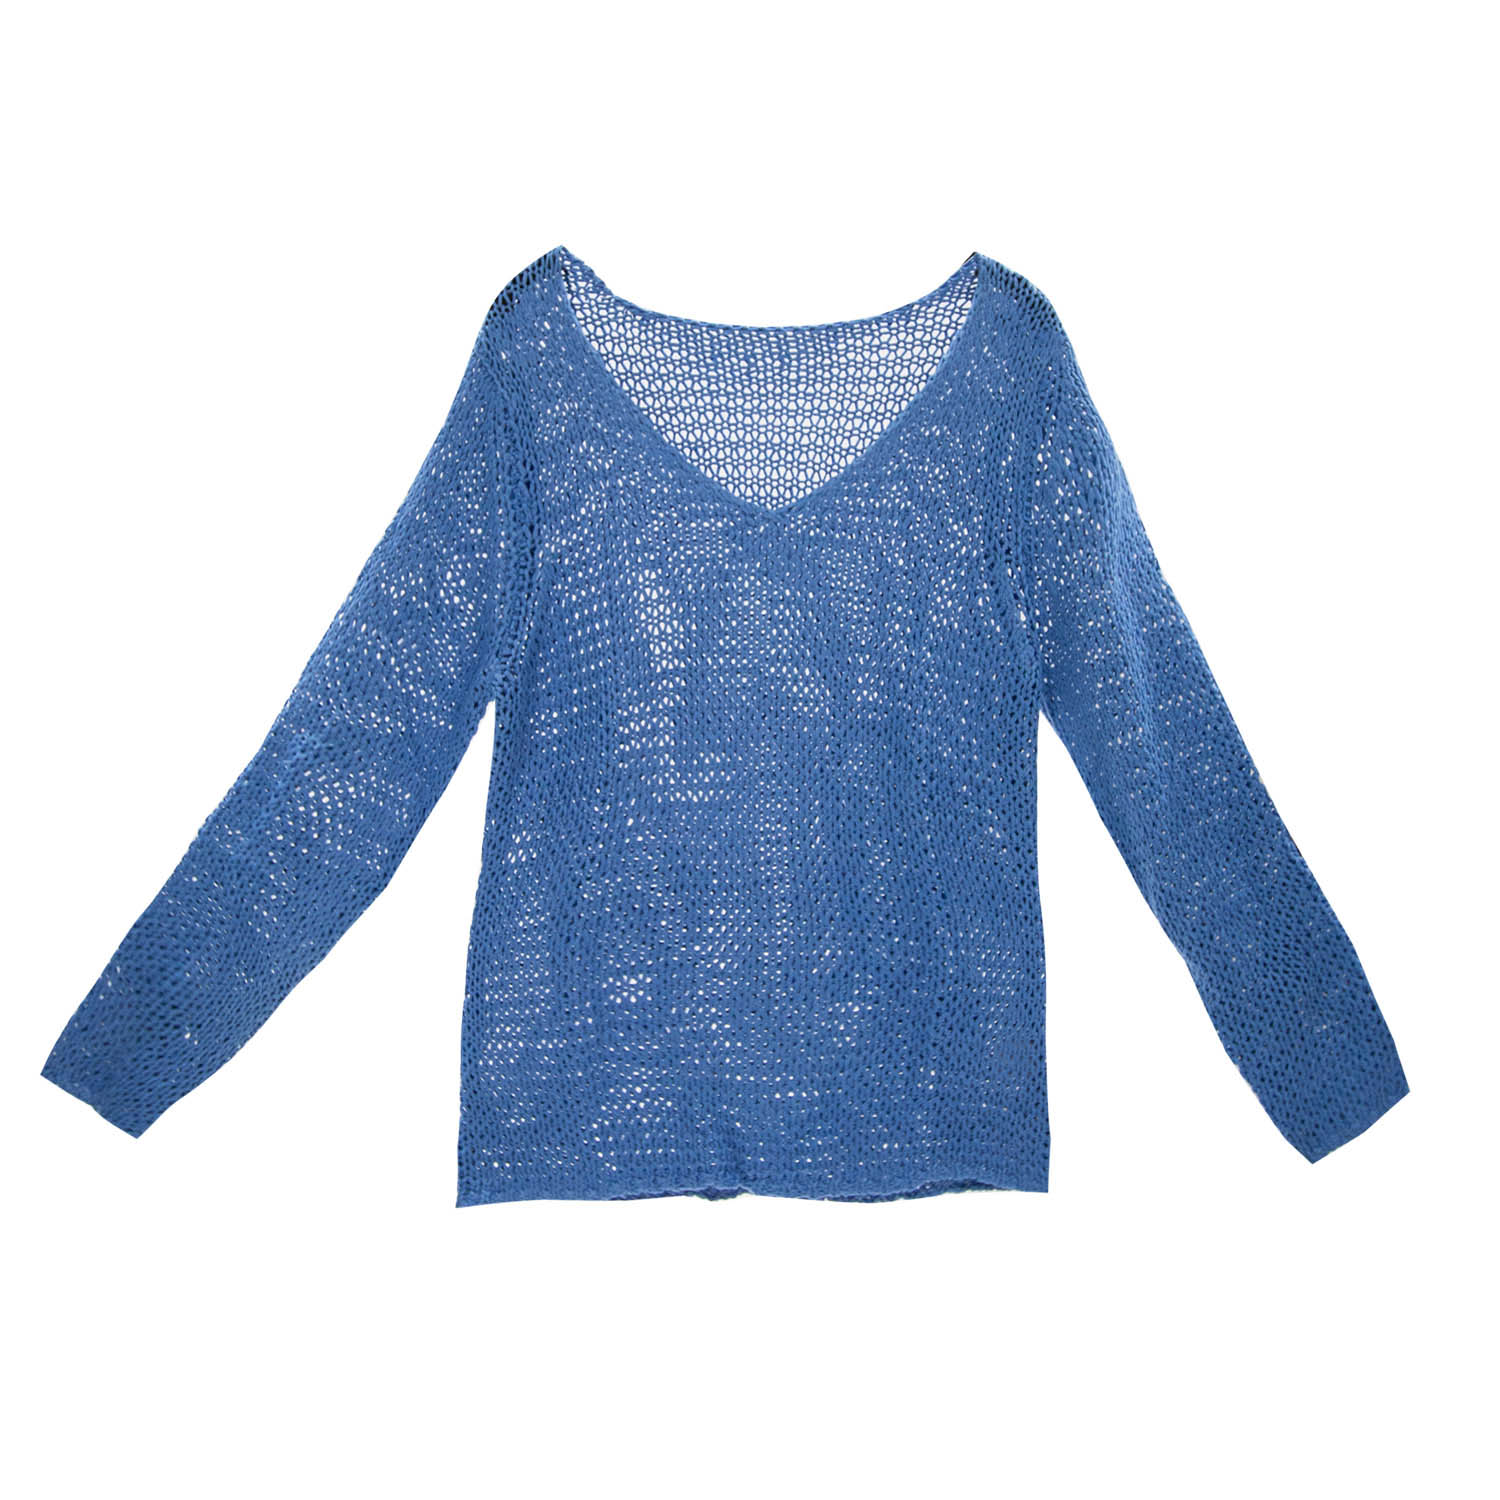 huge selection of 387f6 27965 Damen Bändchengarn Sommer Pullover in Blau